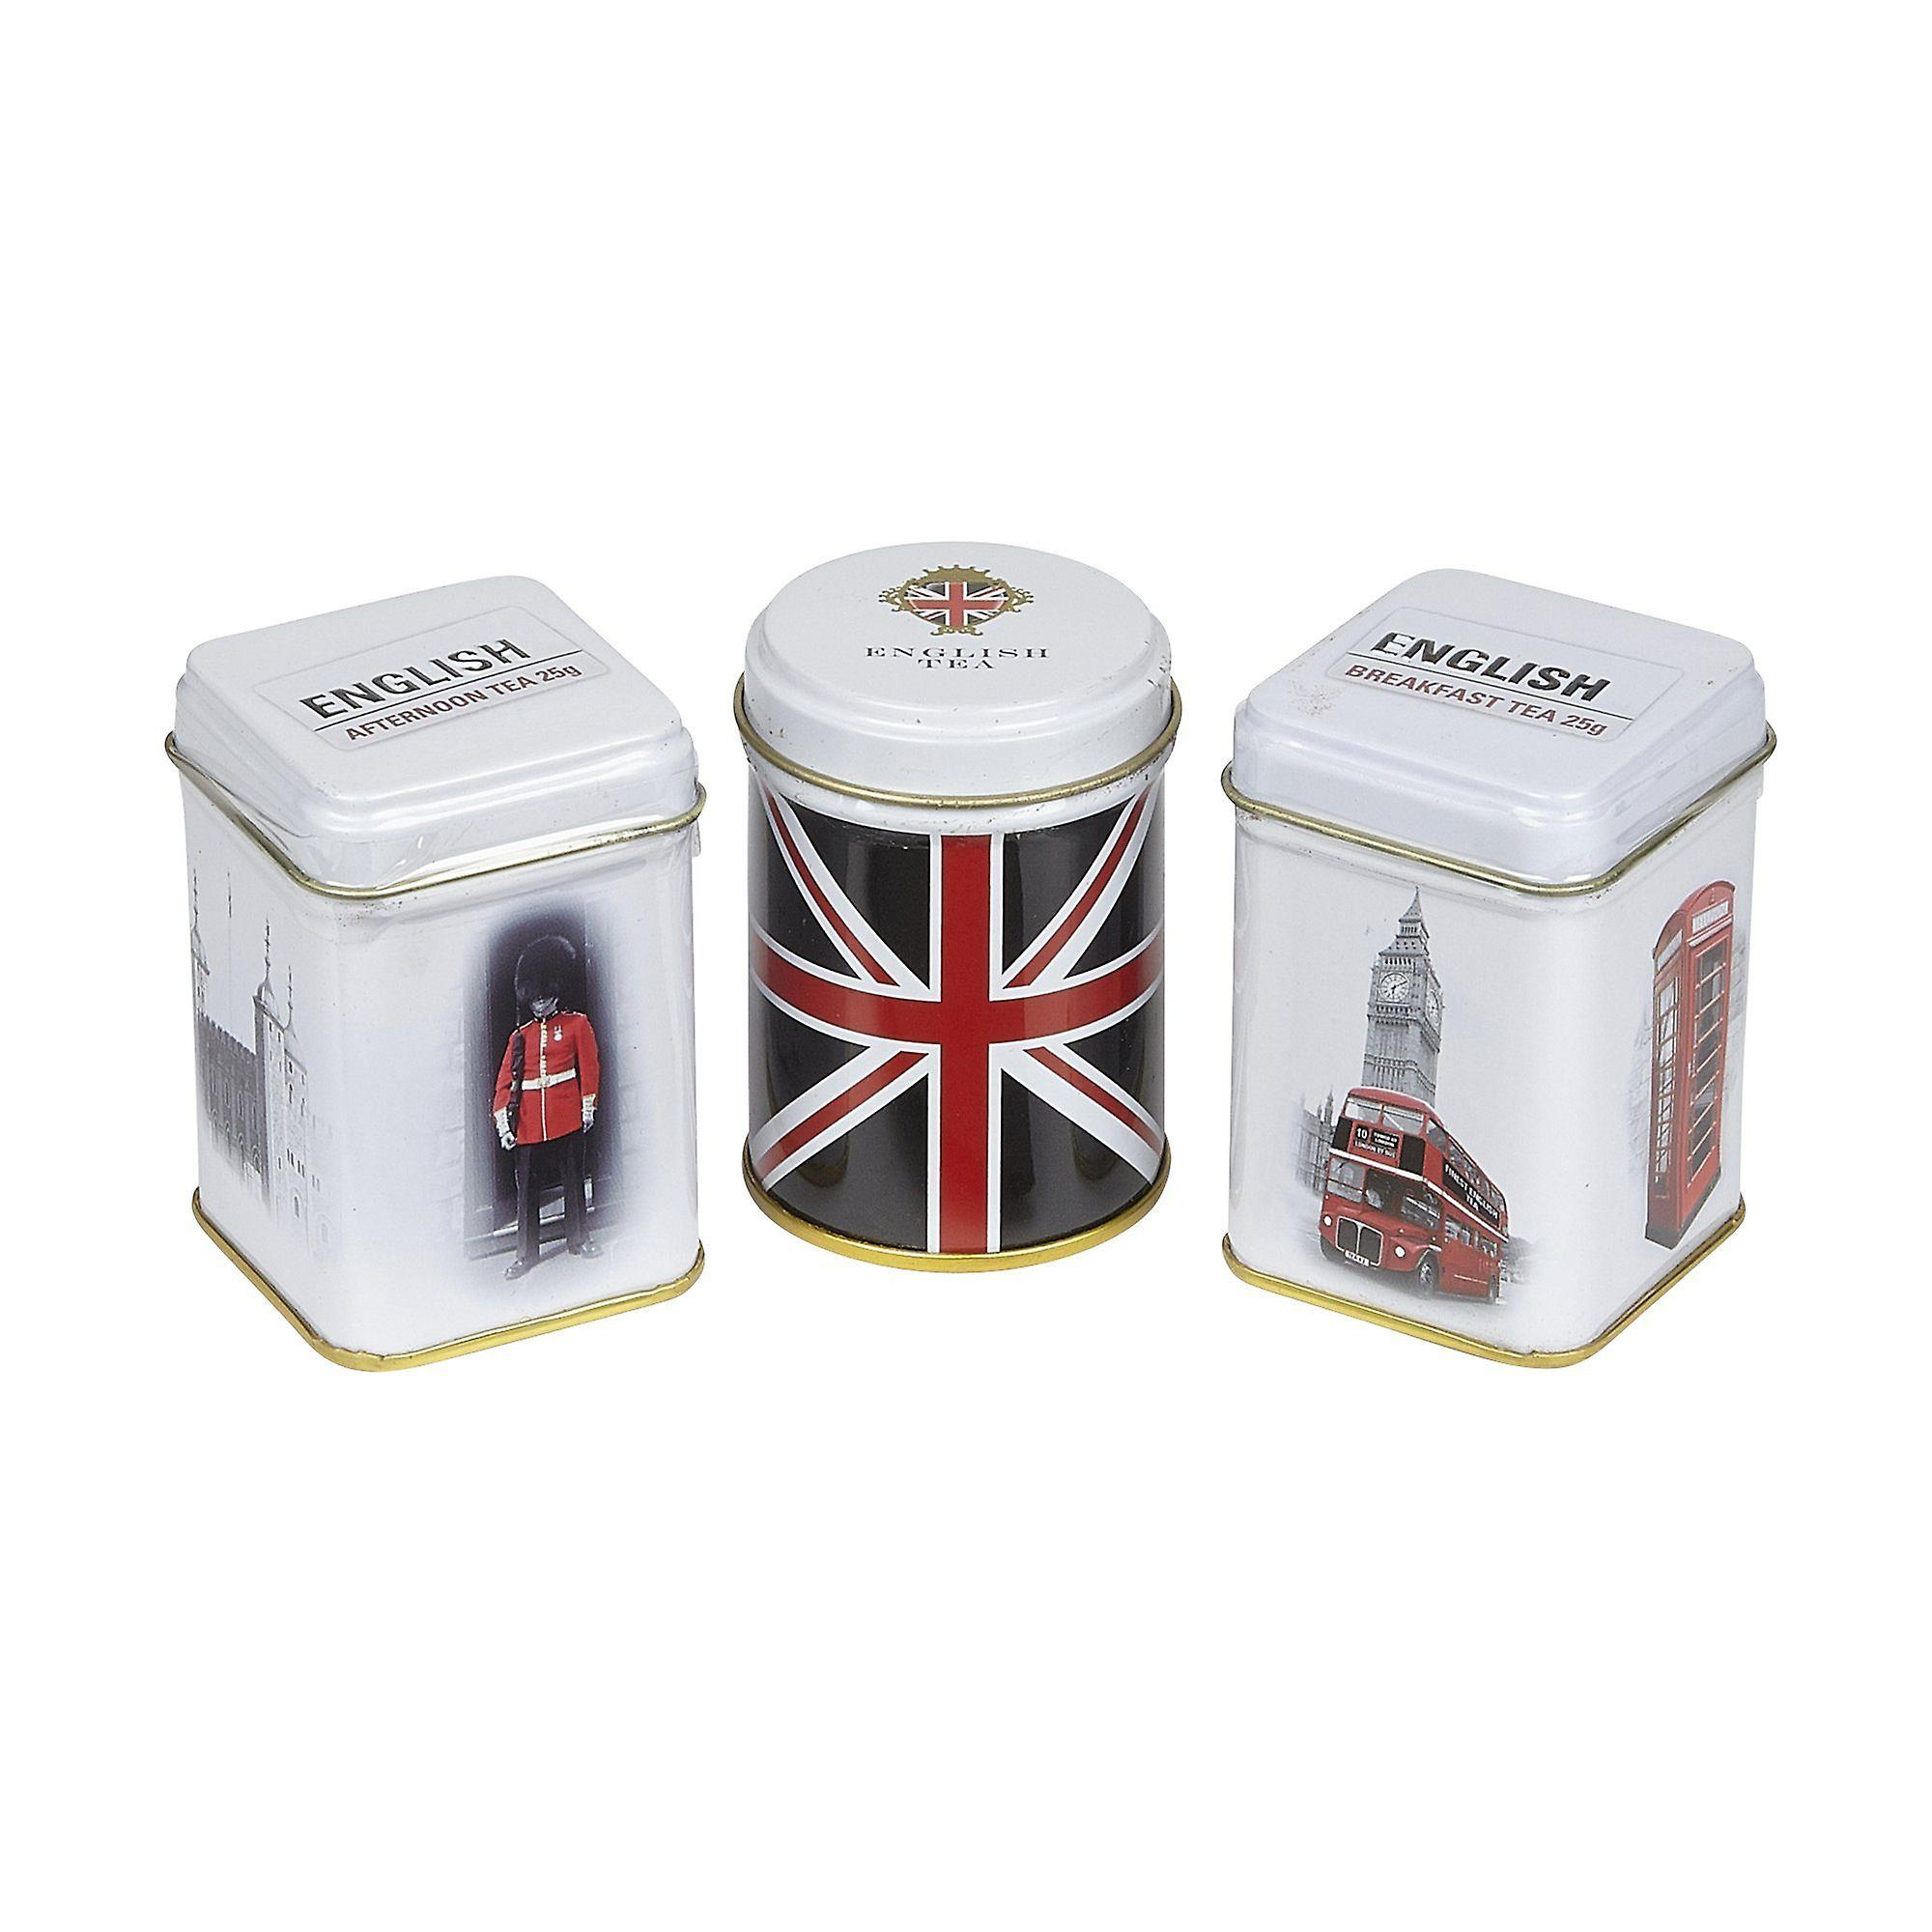 Best of british triple tea selection mini tin gift pack